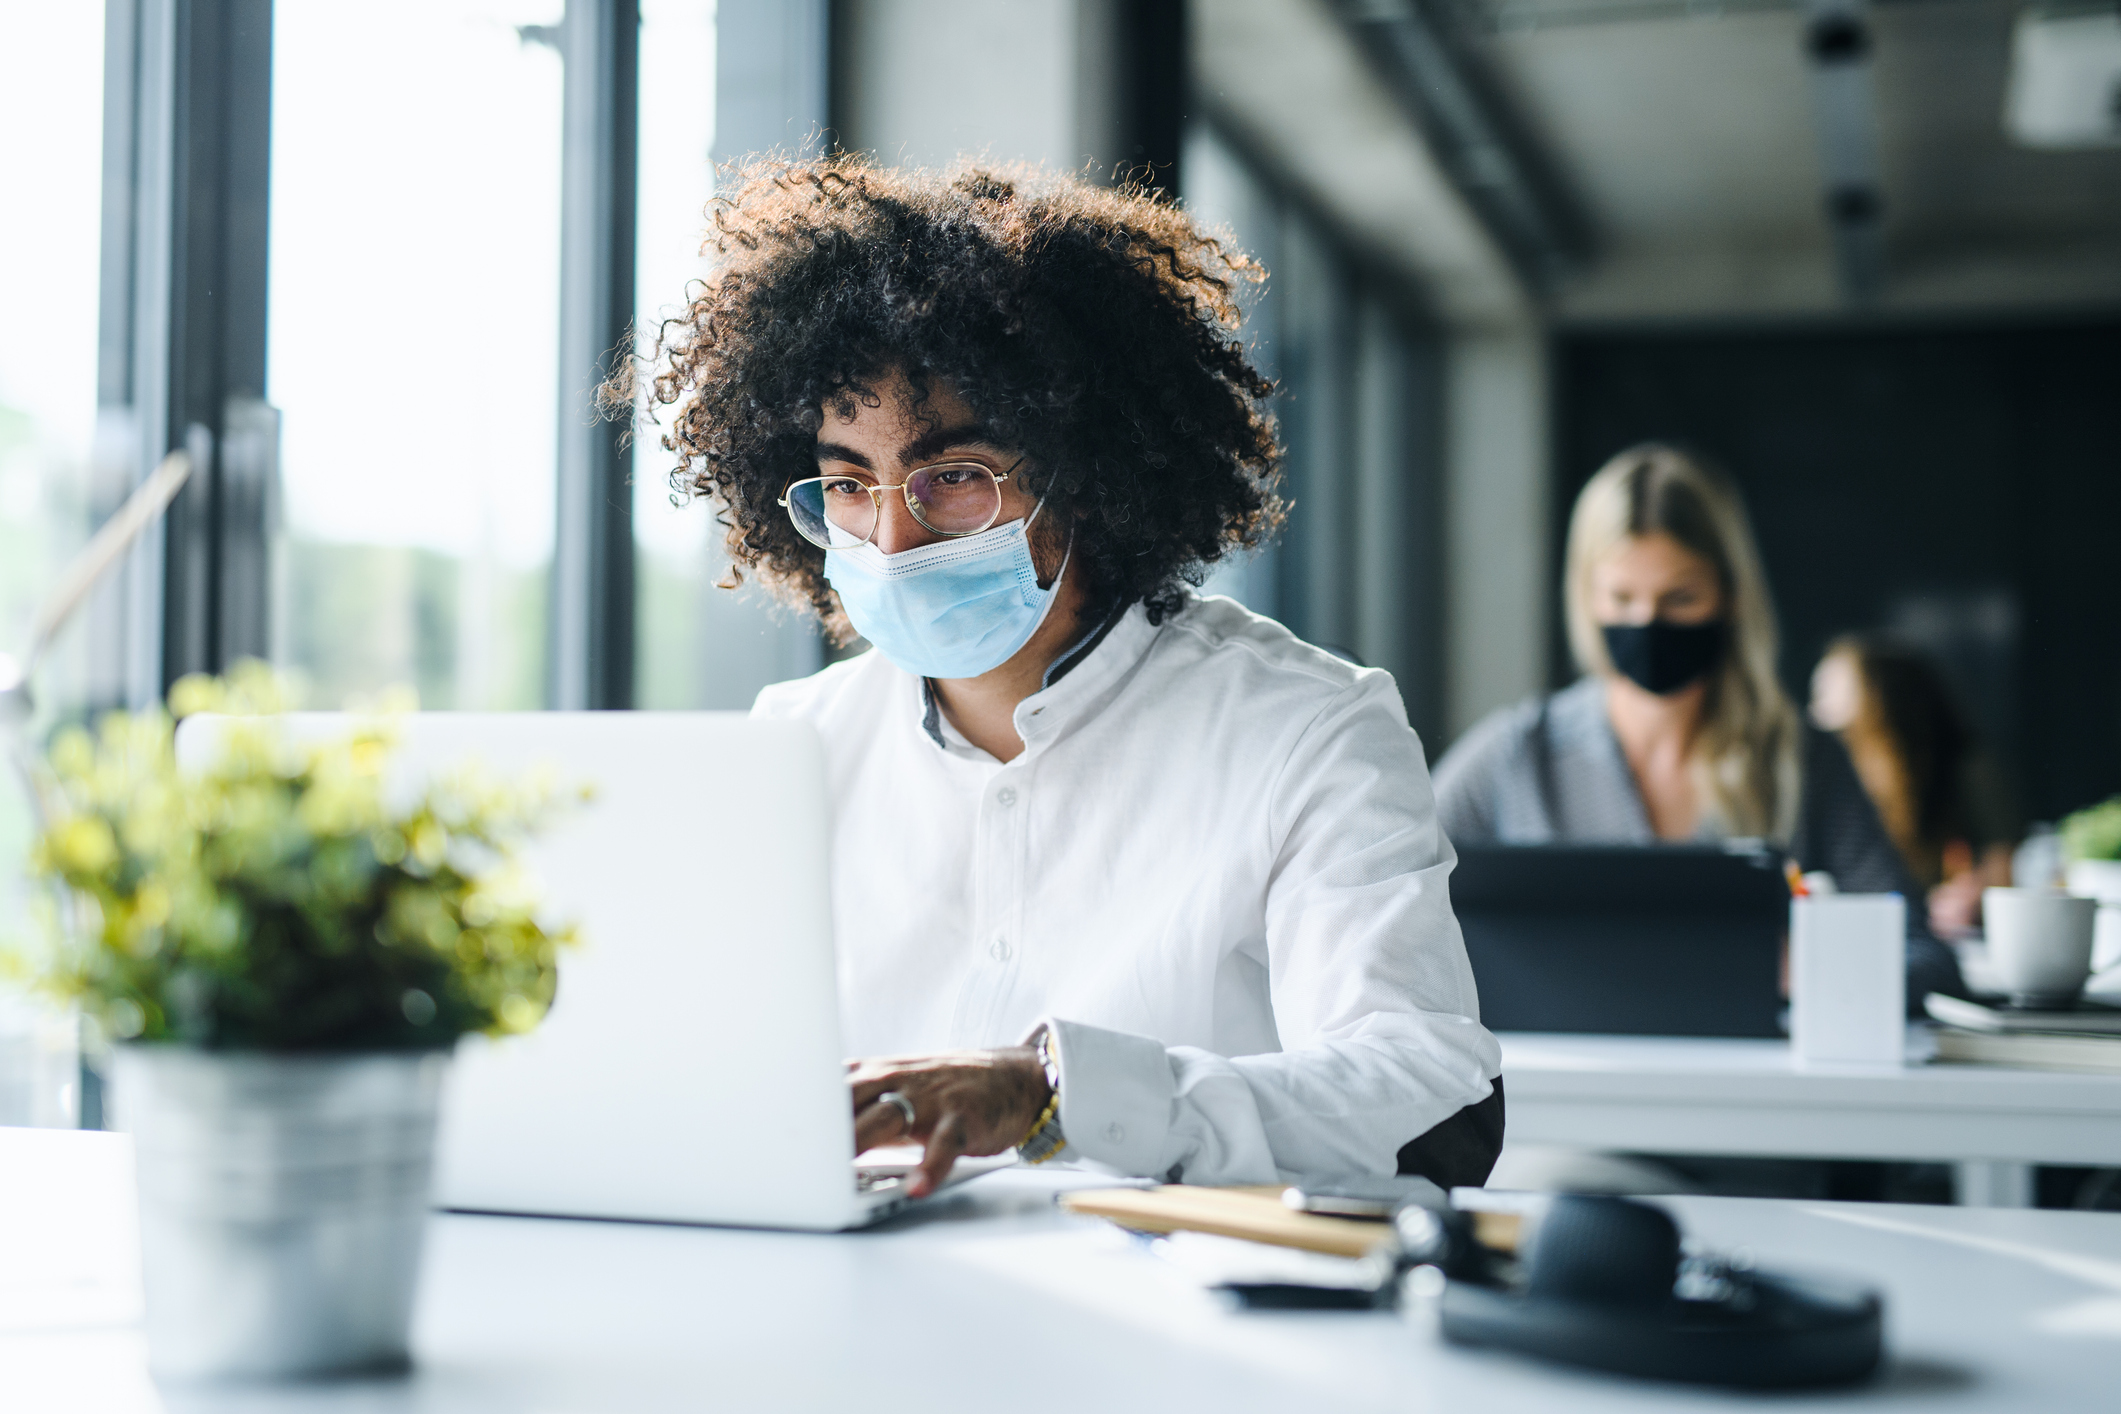 man with face mask back at work in office after lockdown, working.